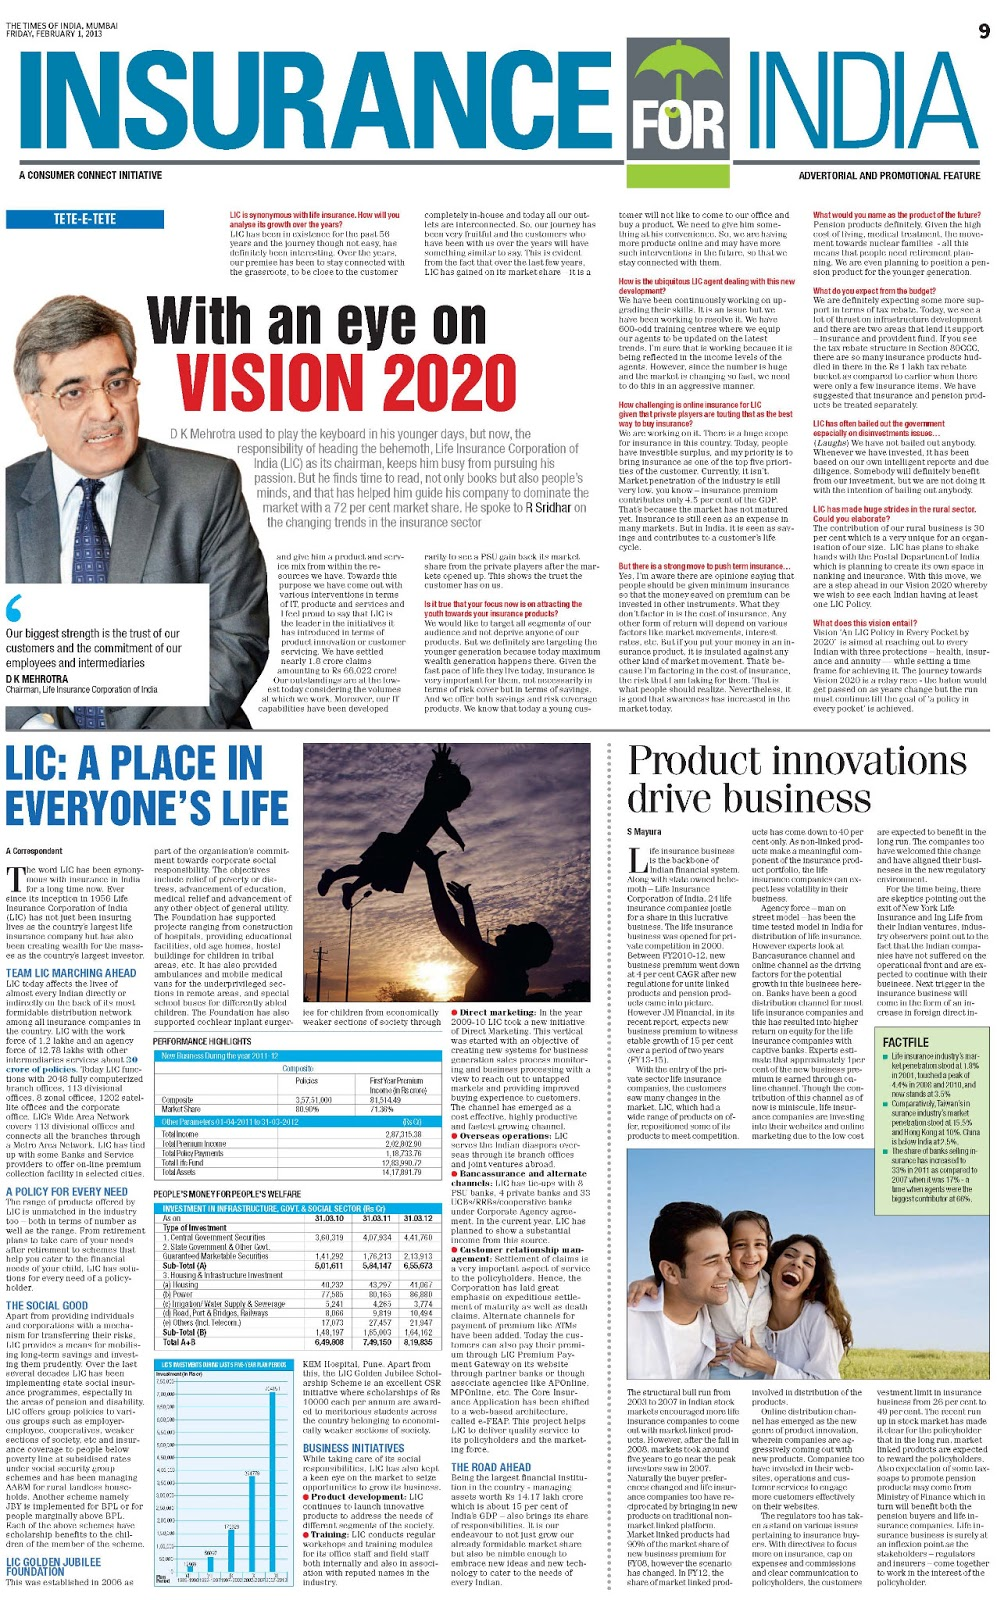 essay on vision of india in 2020